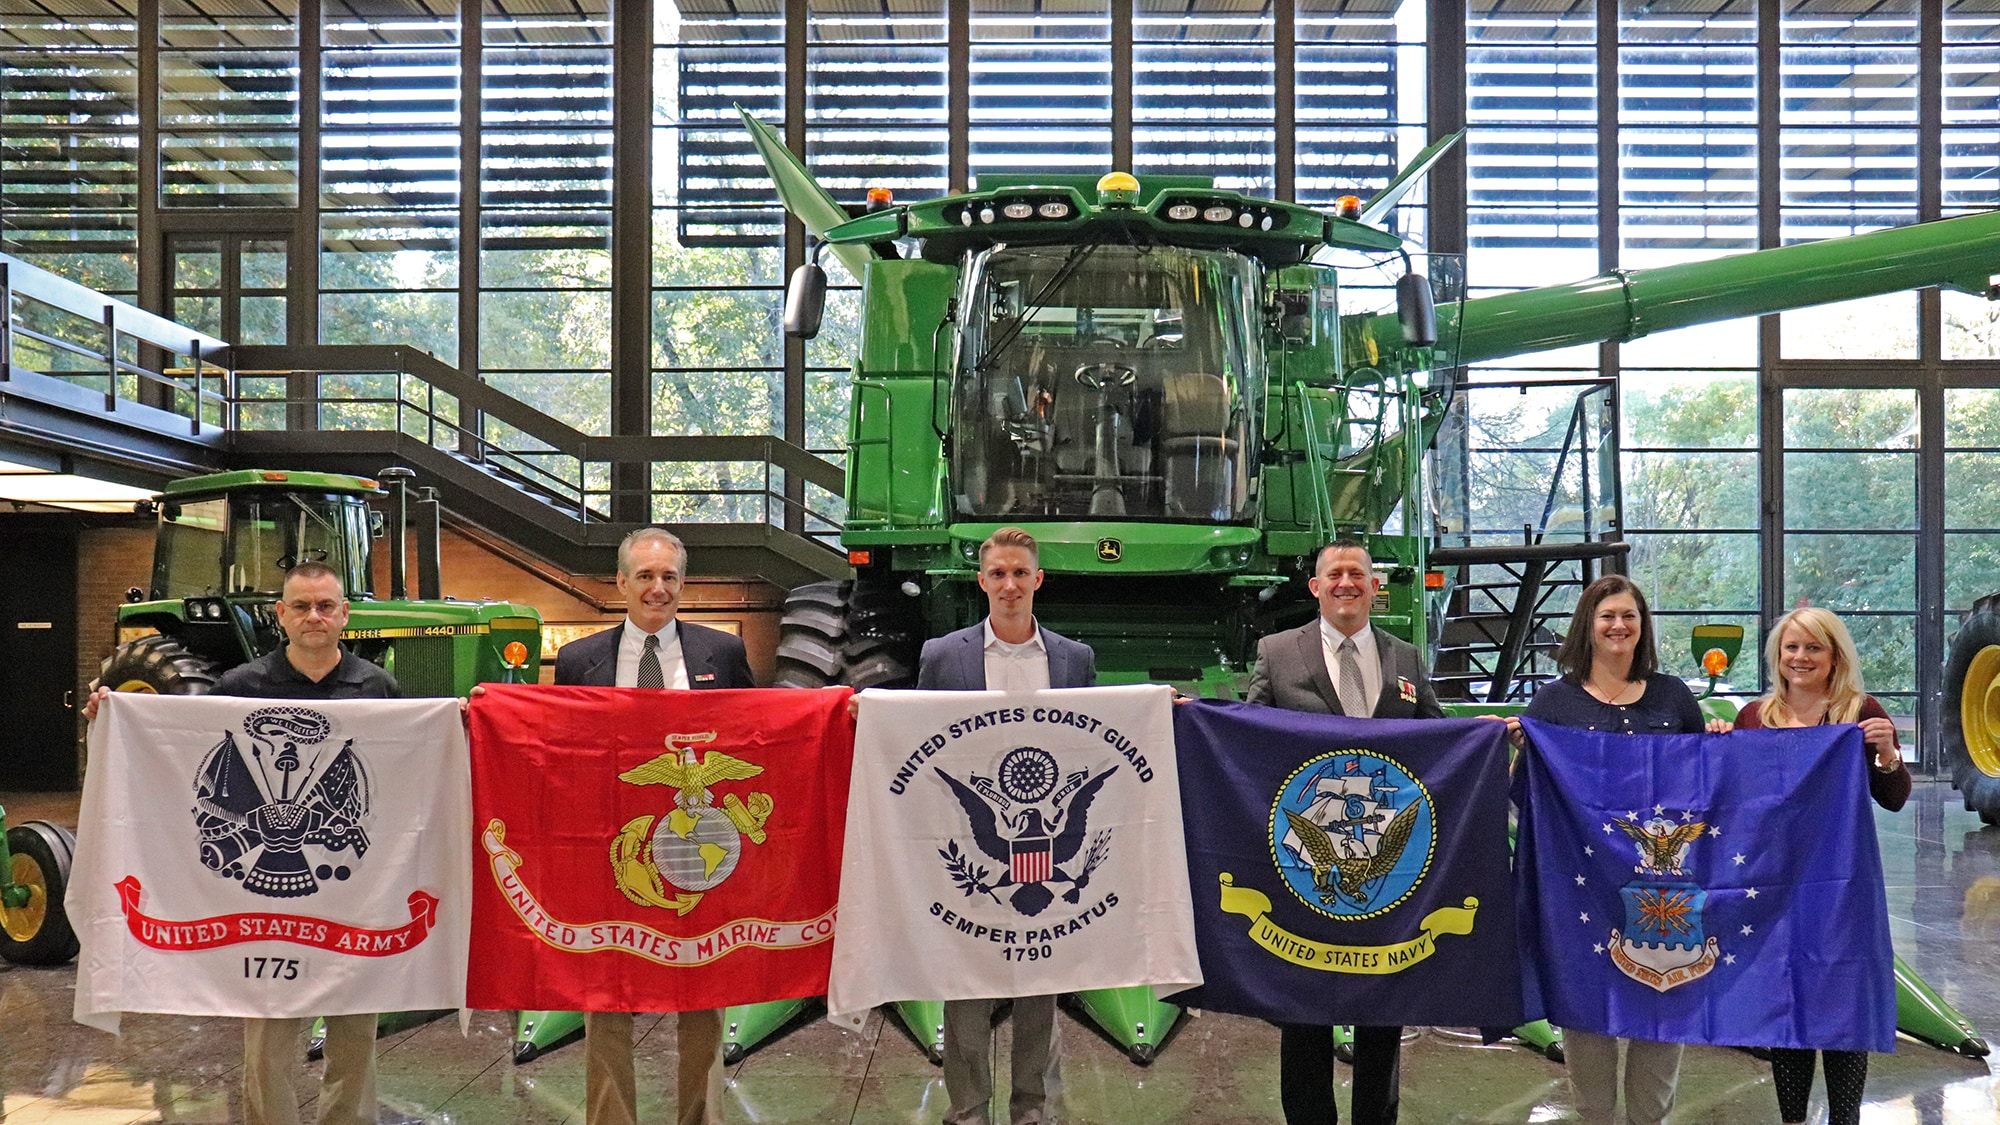 Group of employees who are Veterans holding military branch flags in front of a combine